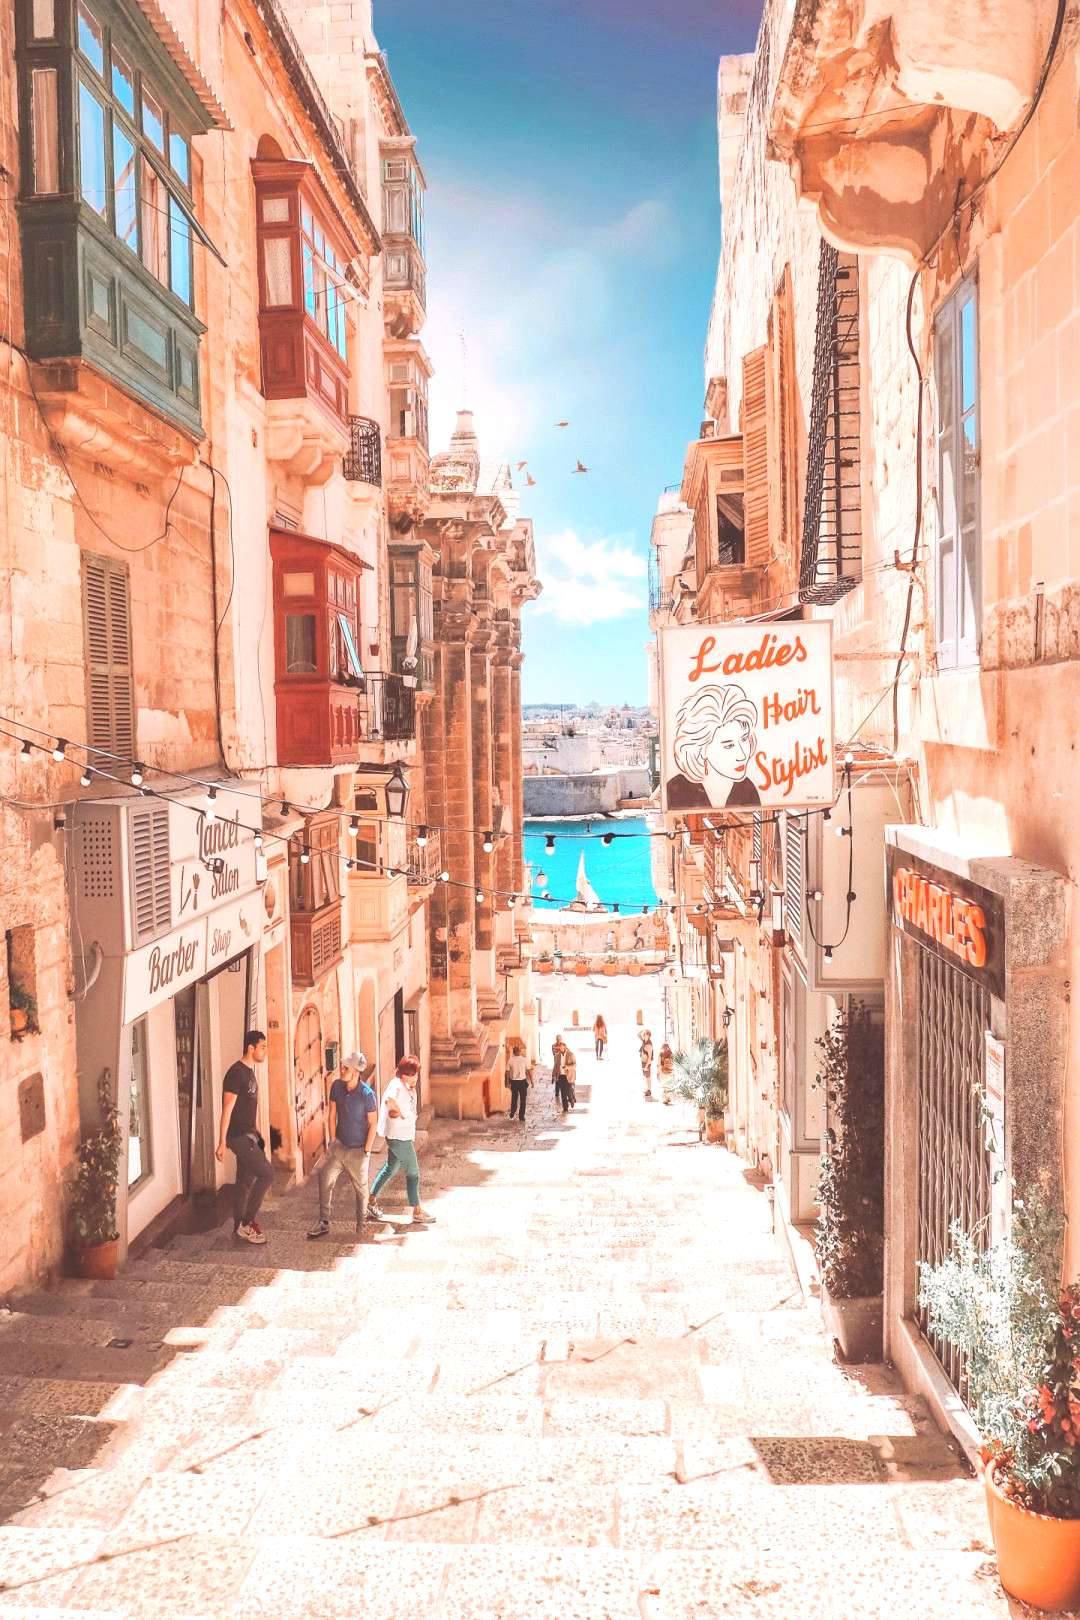 Malta Planning a day trip to Valletta? Click here for more info on things to do in Valletta, Malta,